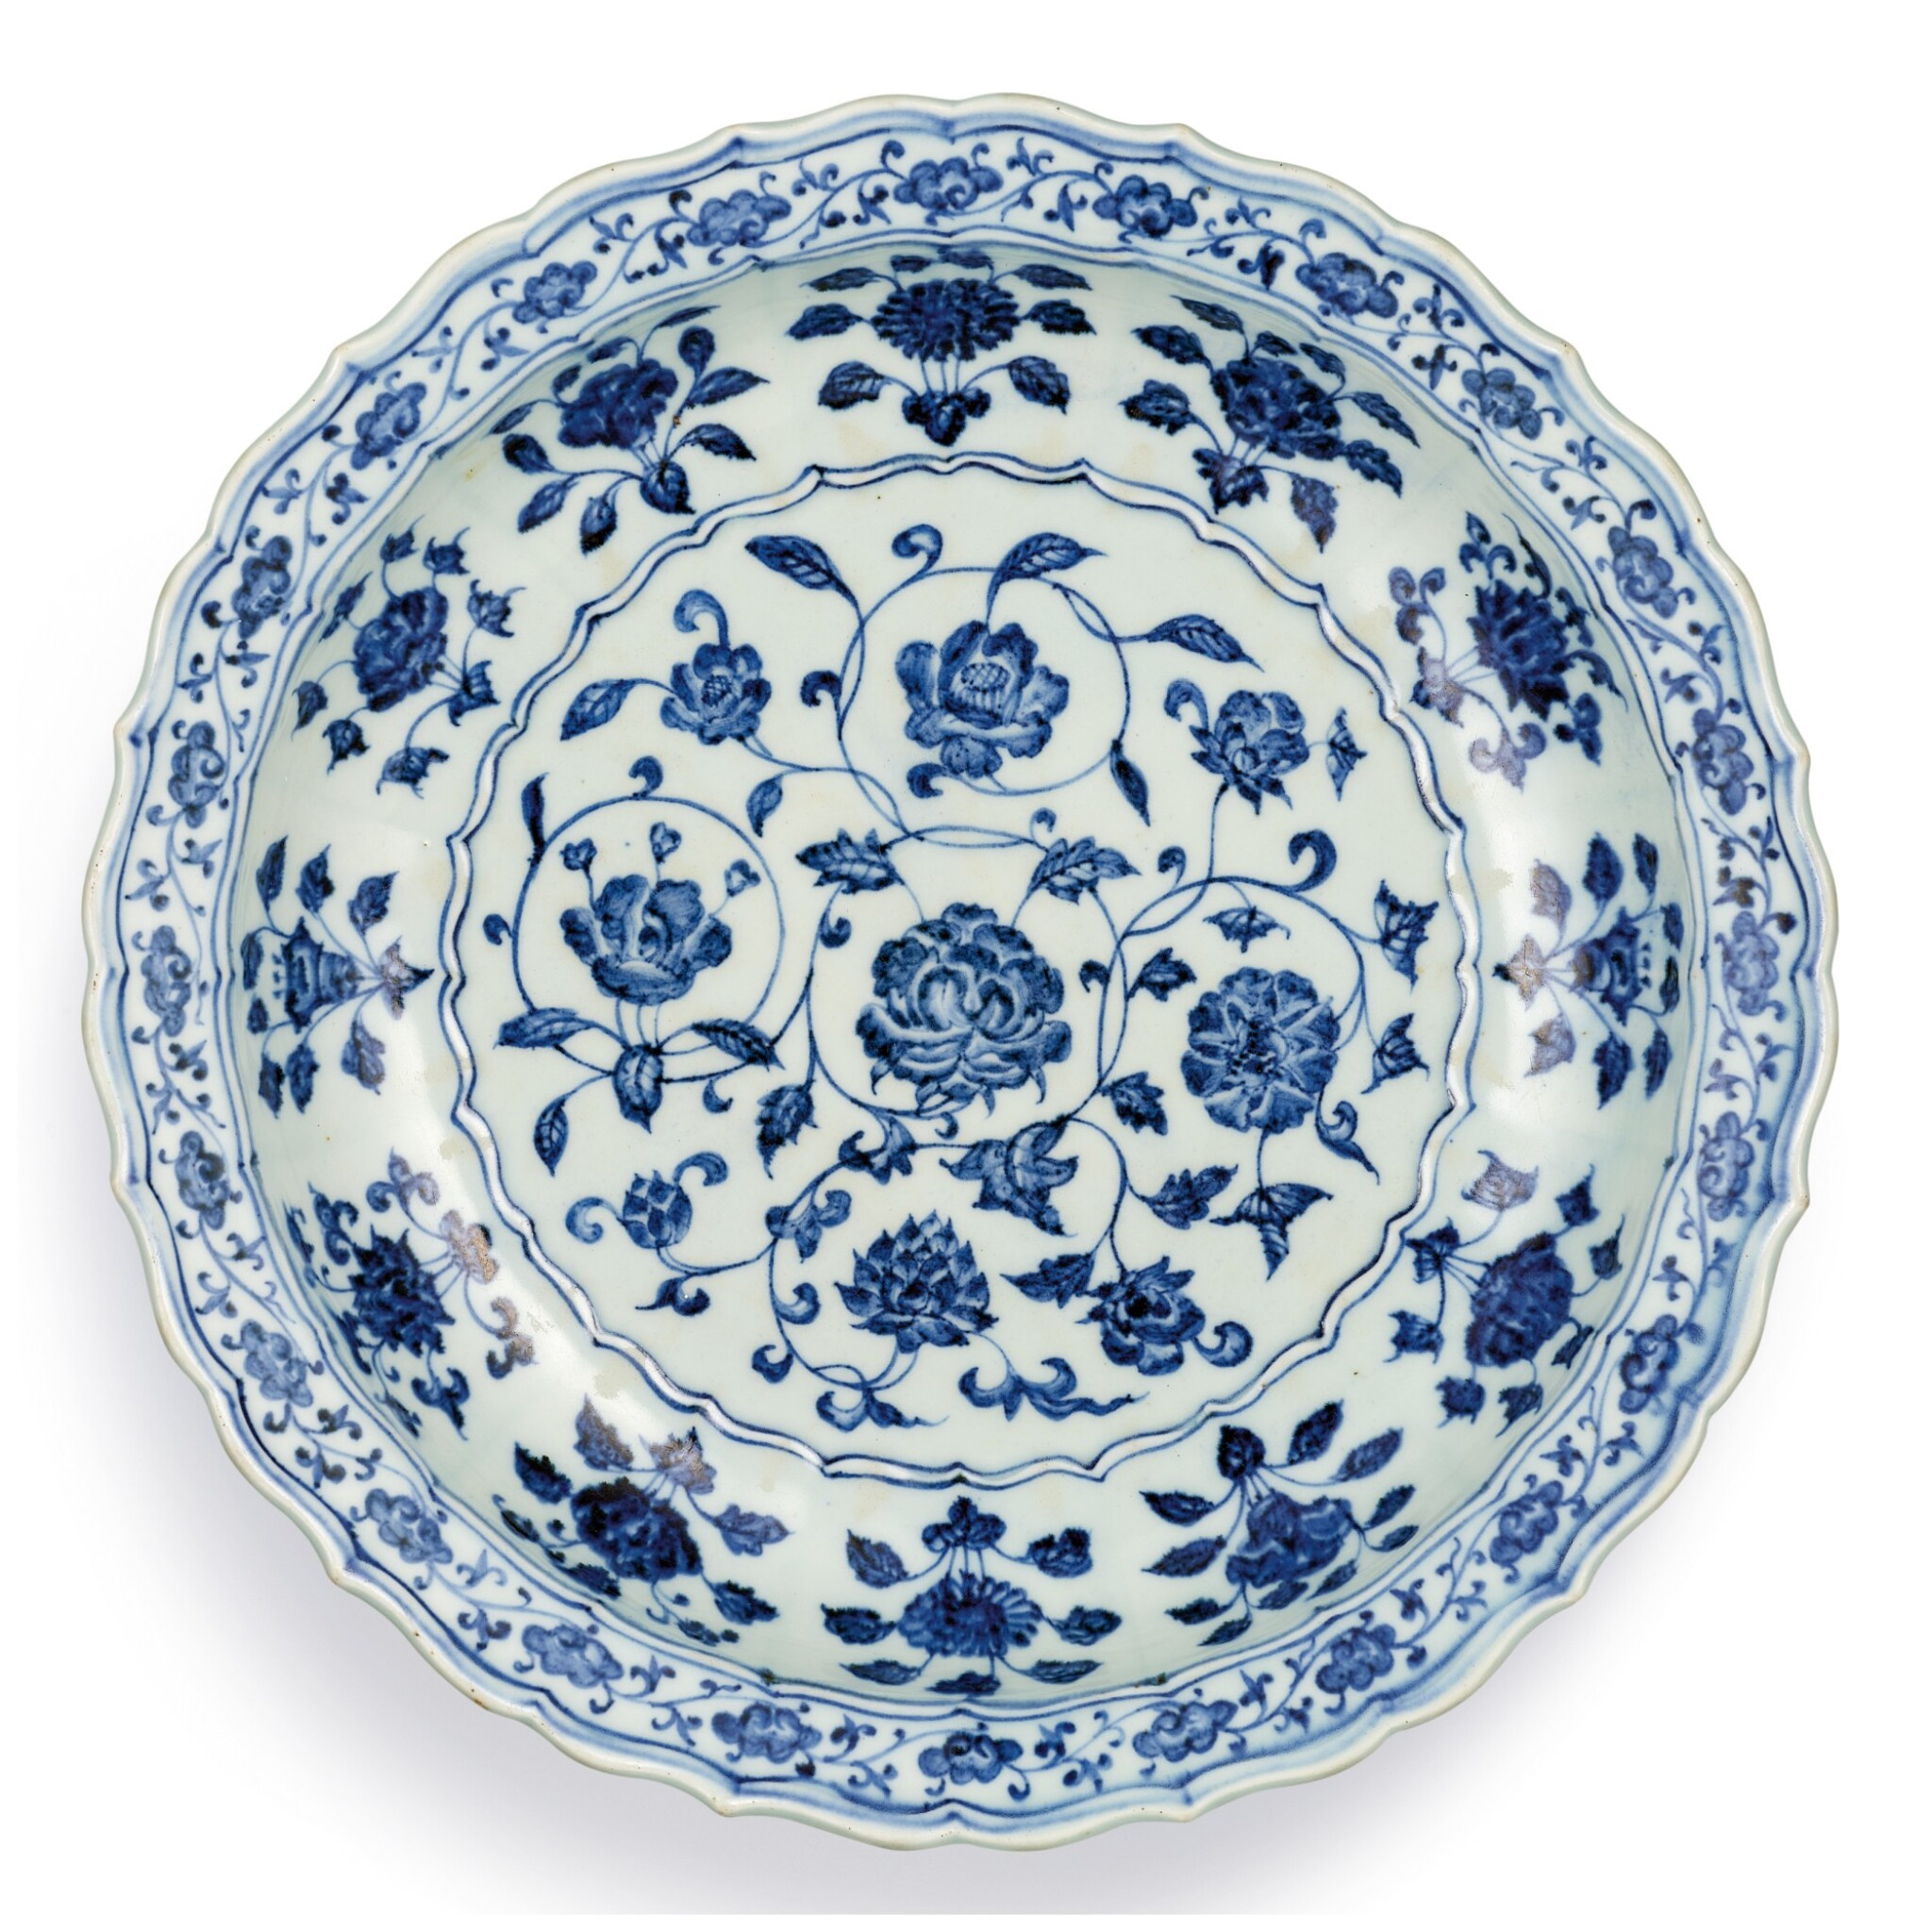 View full screen - View 1 of Lot 3607. A FINE BLUE AND WHITE 'FLORAL' BARBED CHARGER MING DYNASTY, YONGLE PERIOD | 明永樂 青花花卉紋菱口折沿盤.